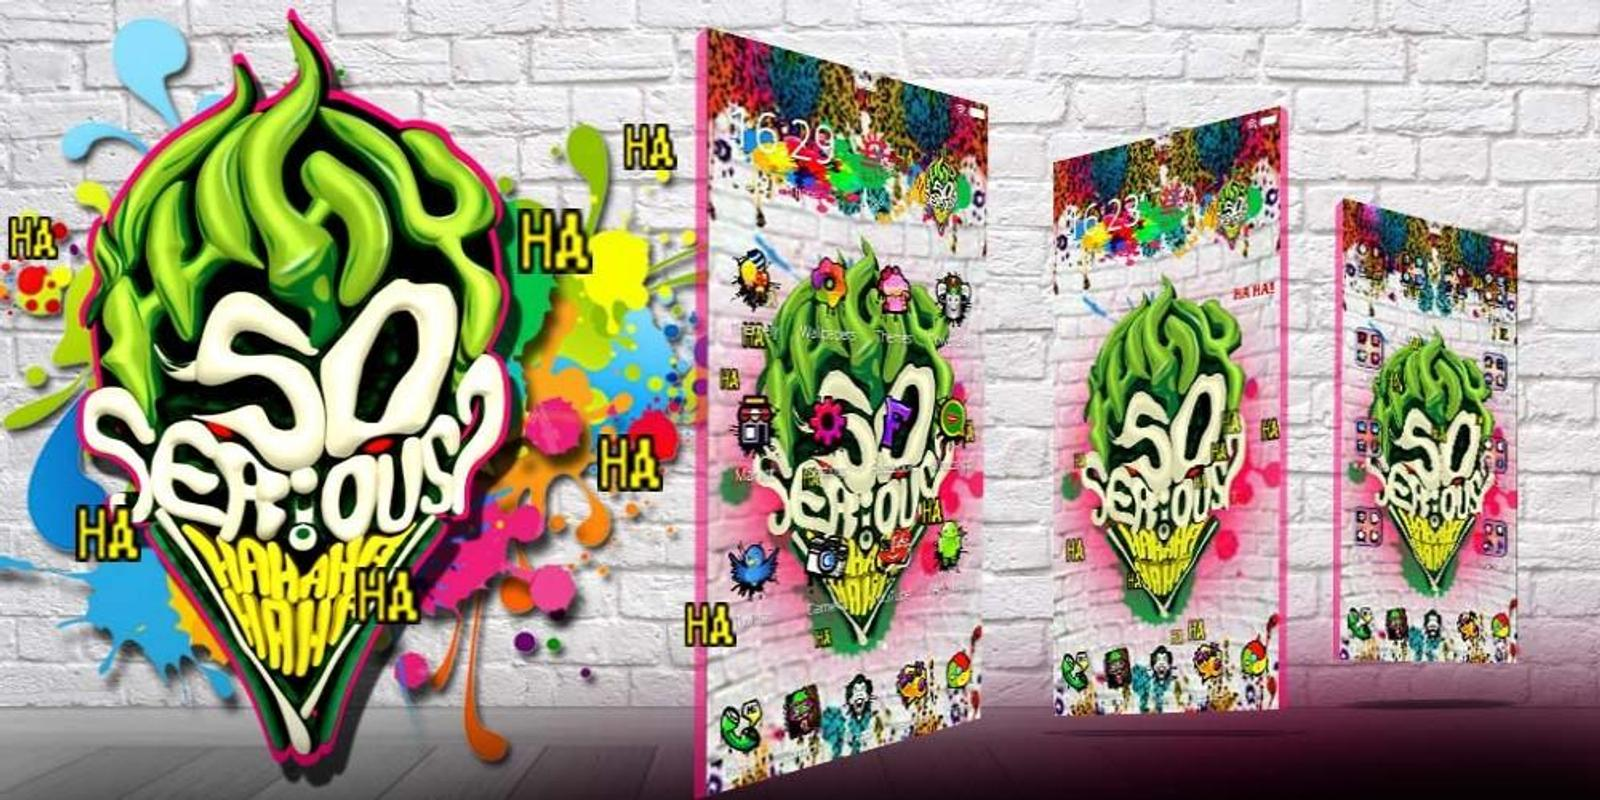 Tema joker 3d graffiti screenshot 3